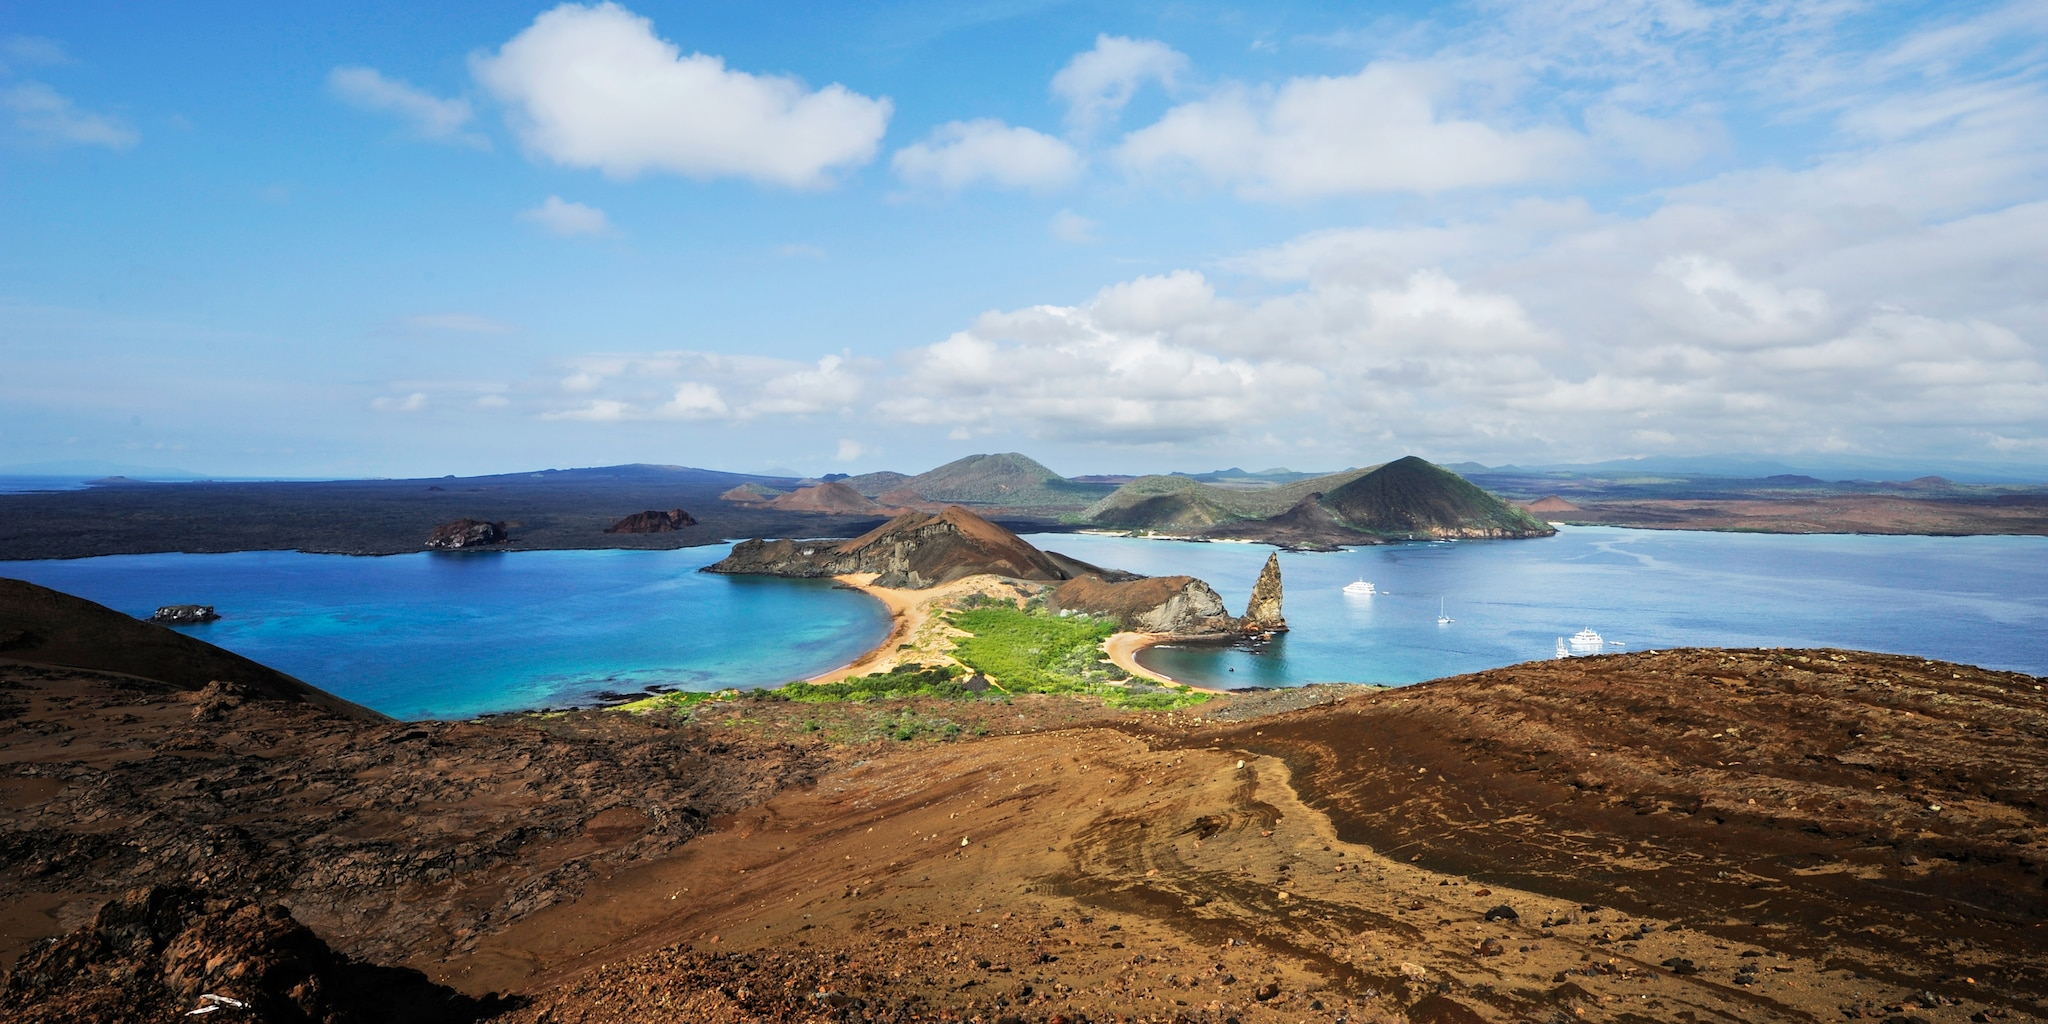 The hilly shores of Bartolome Island